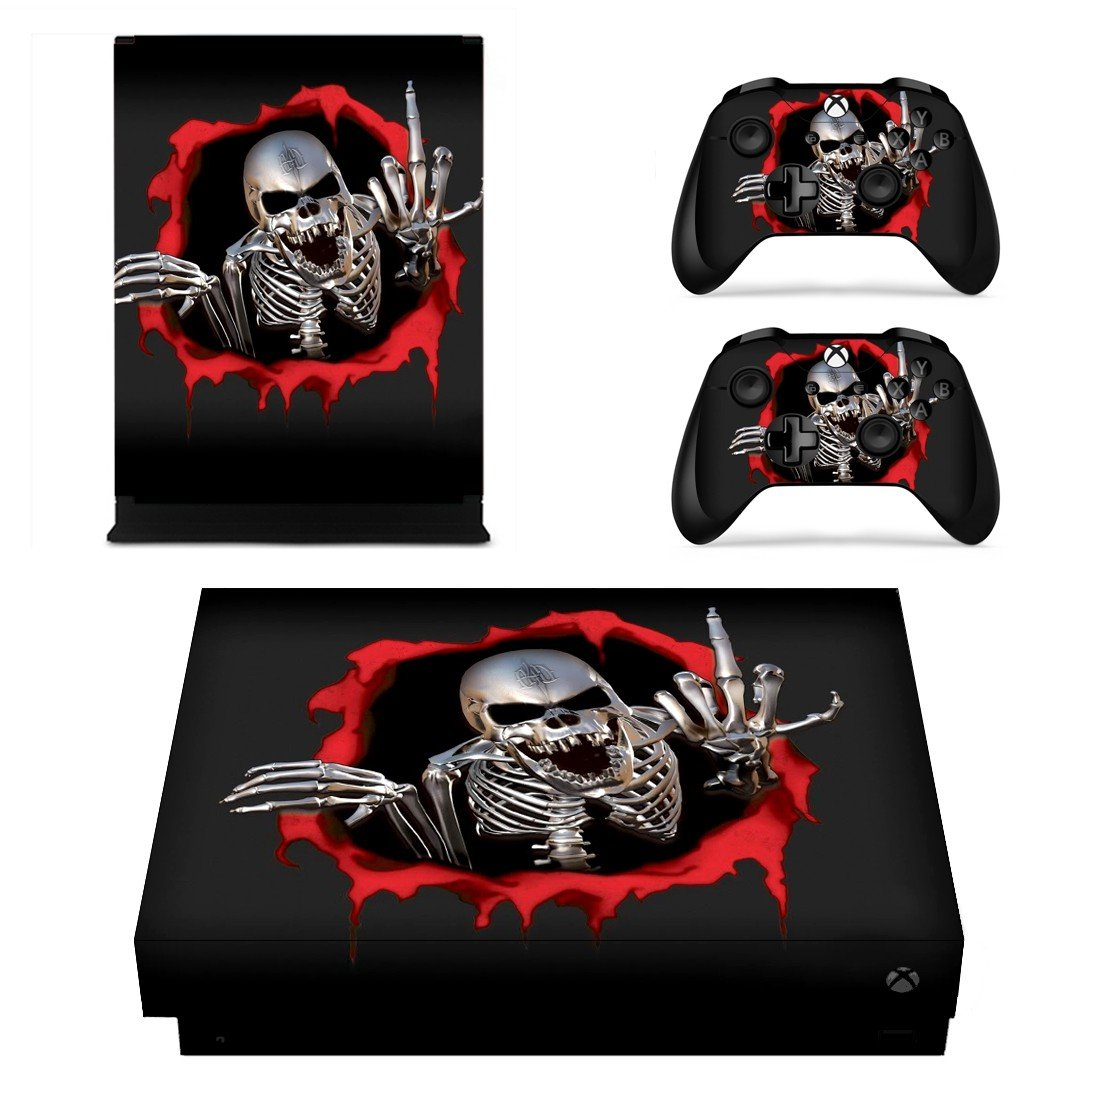 Skeleton xbox one X skin decal for console and 2 controllers